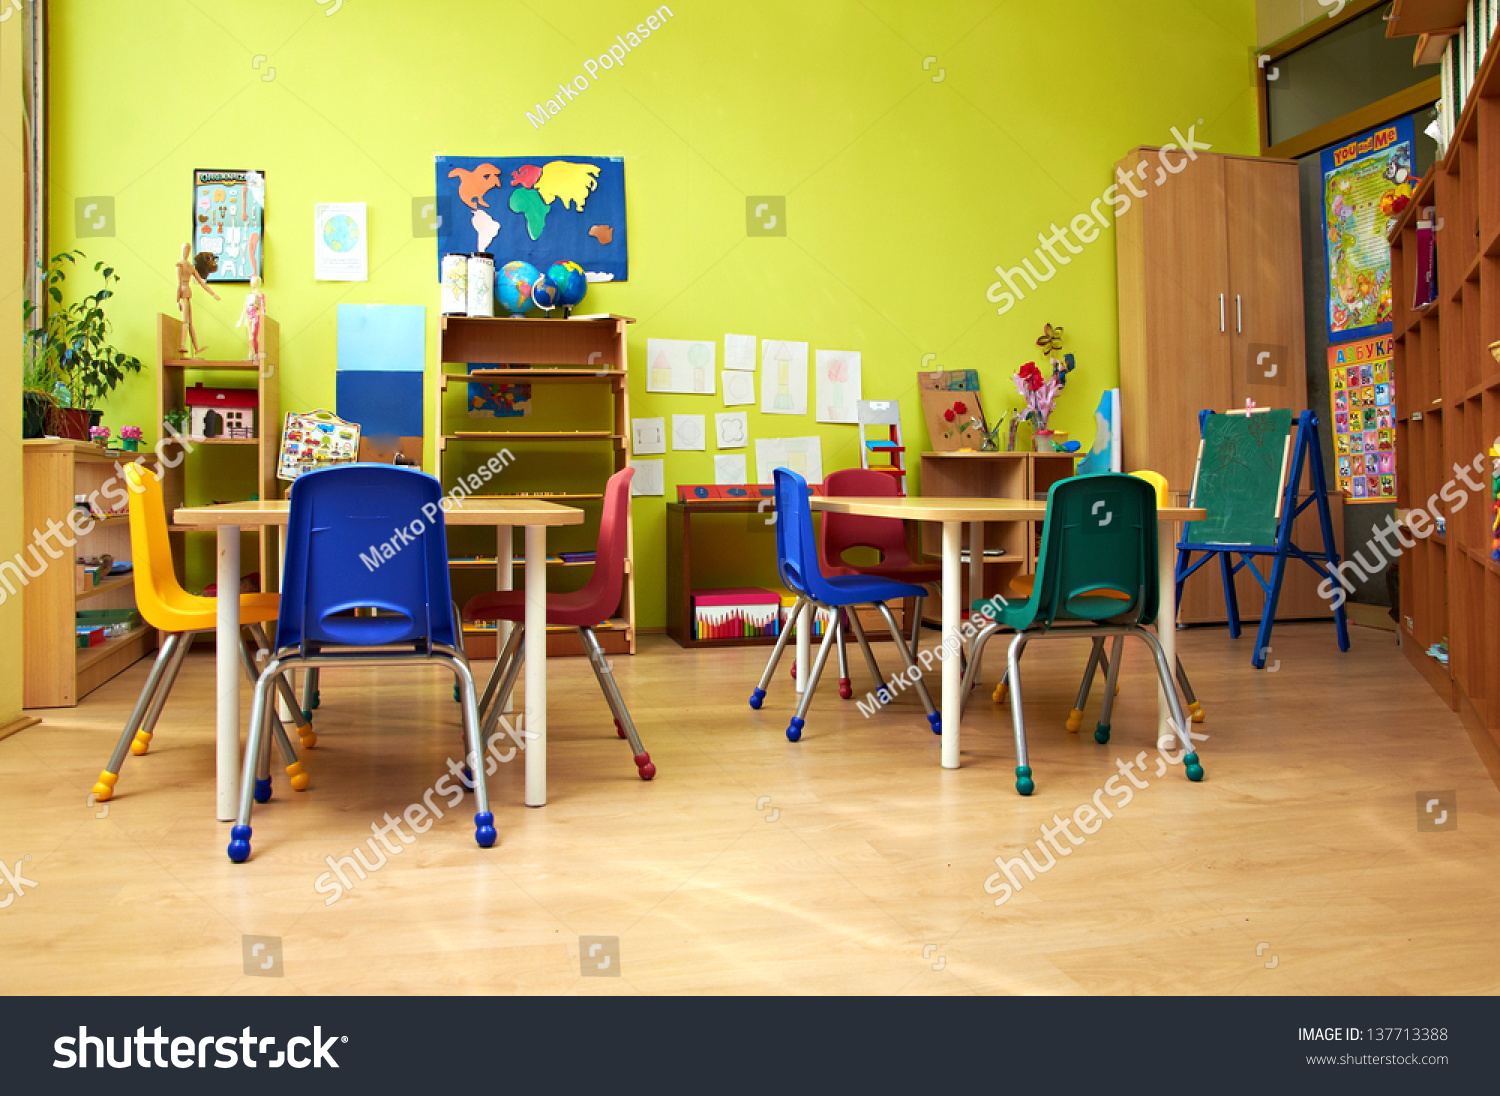 Worksheet Preschool Kindergarten montessori kindergarten preschool classroom stock photo 137713388 classroom